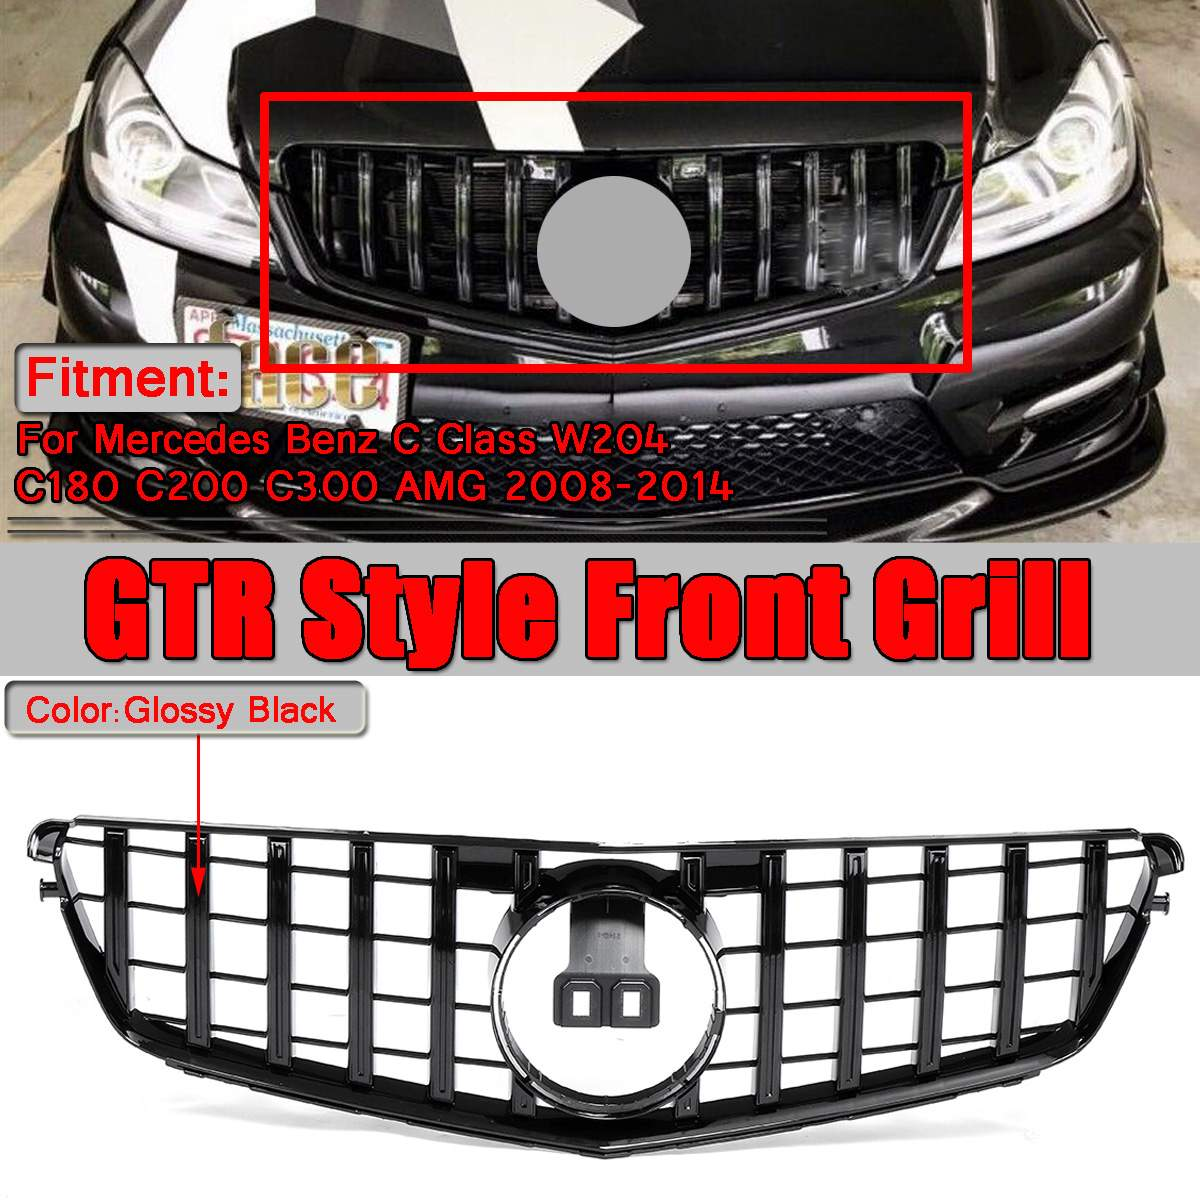 <font><b>W204</b></font> GT GTR Style Car Front Bumper Upper Racing Grille <font><b>Grill</b></font> For Mercedes For <font><b>Benz</b></font> <font><b>W204</b></font> C180 C200 C300 for AMG 2008-2014 image